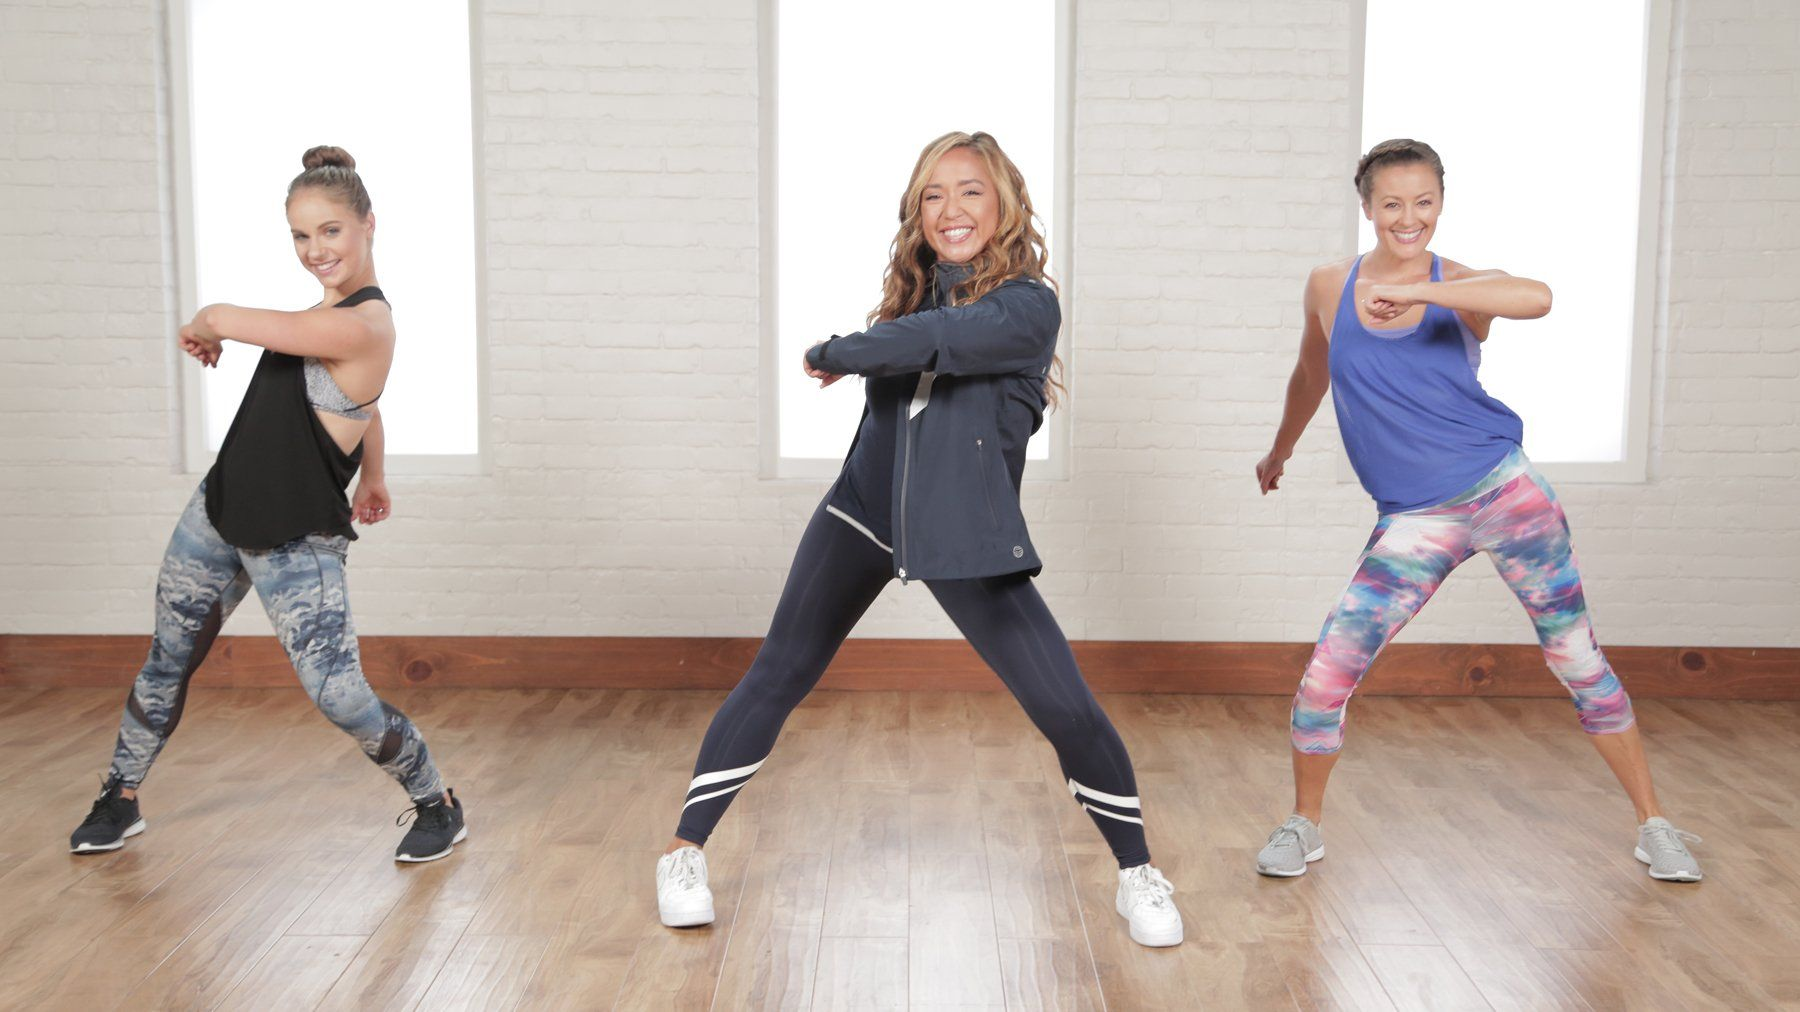 This 20-Minute Cardio Dance Workout Is a Seriously Fun Way to Burn Calories: Dancing might just be the most fun cardio option out there.